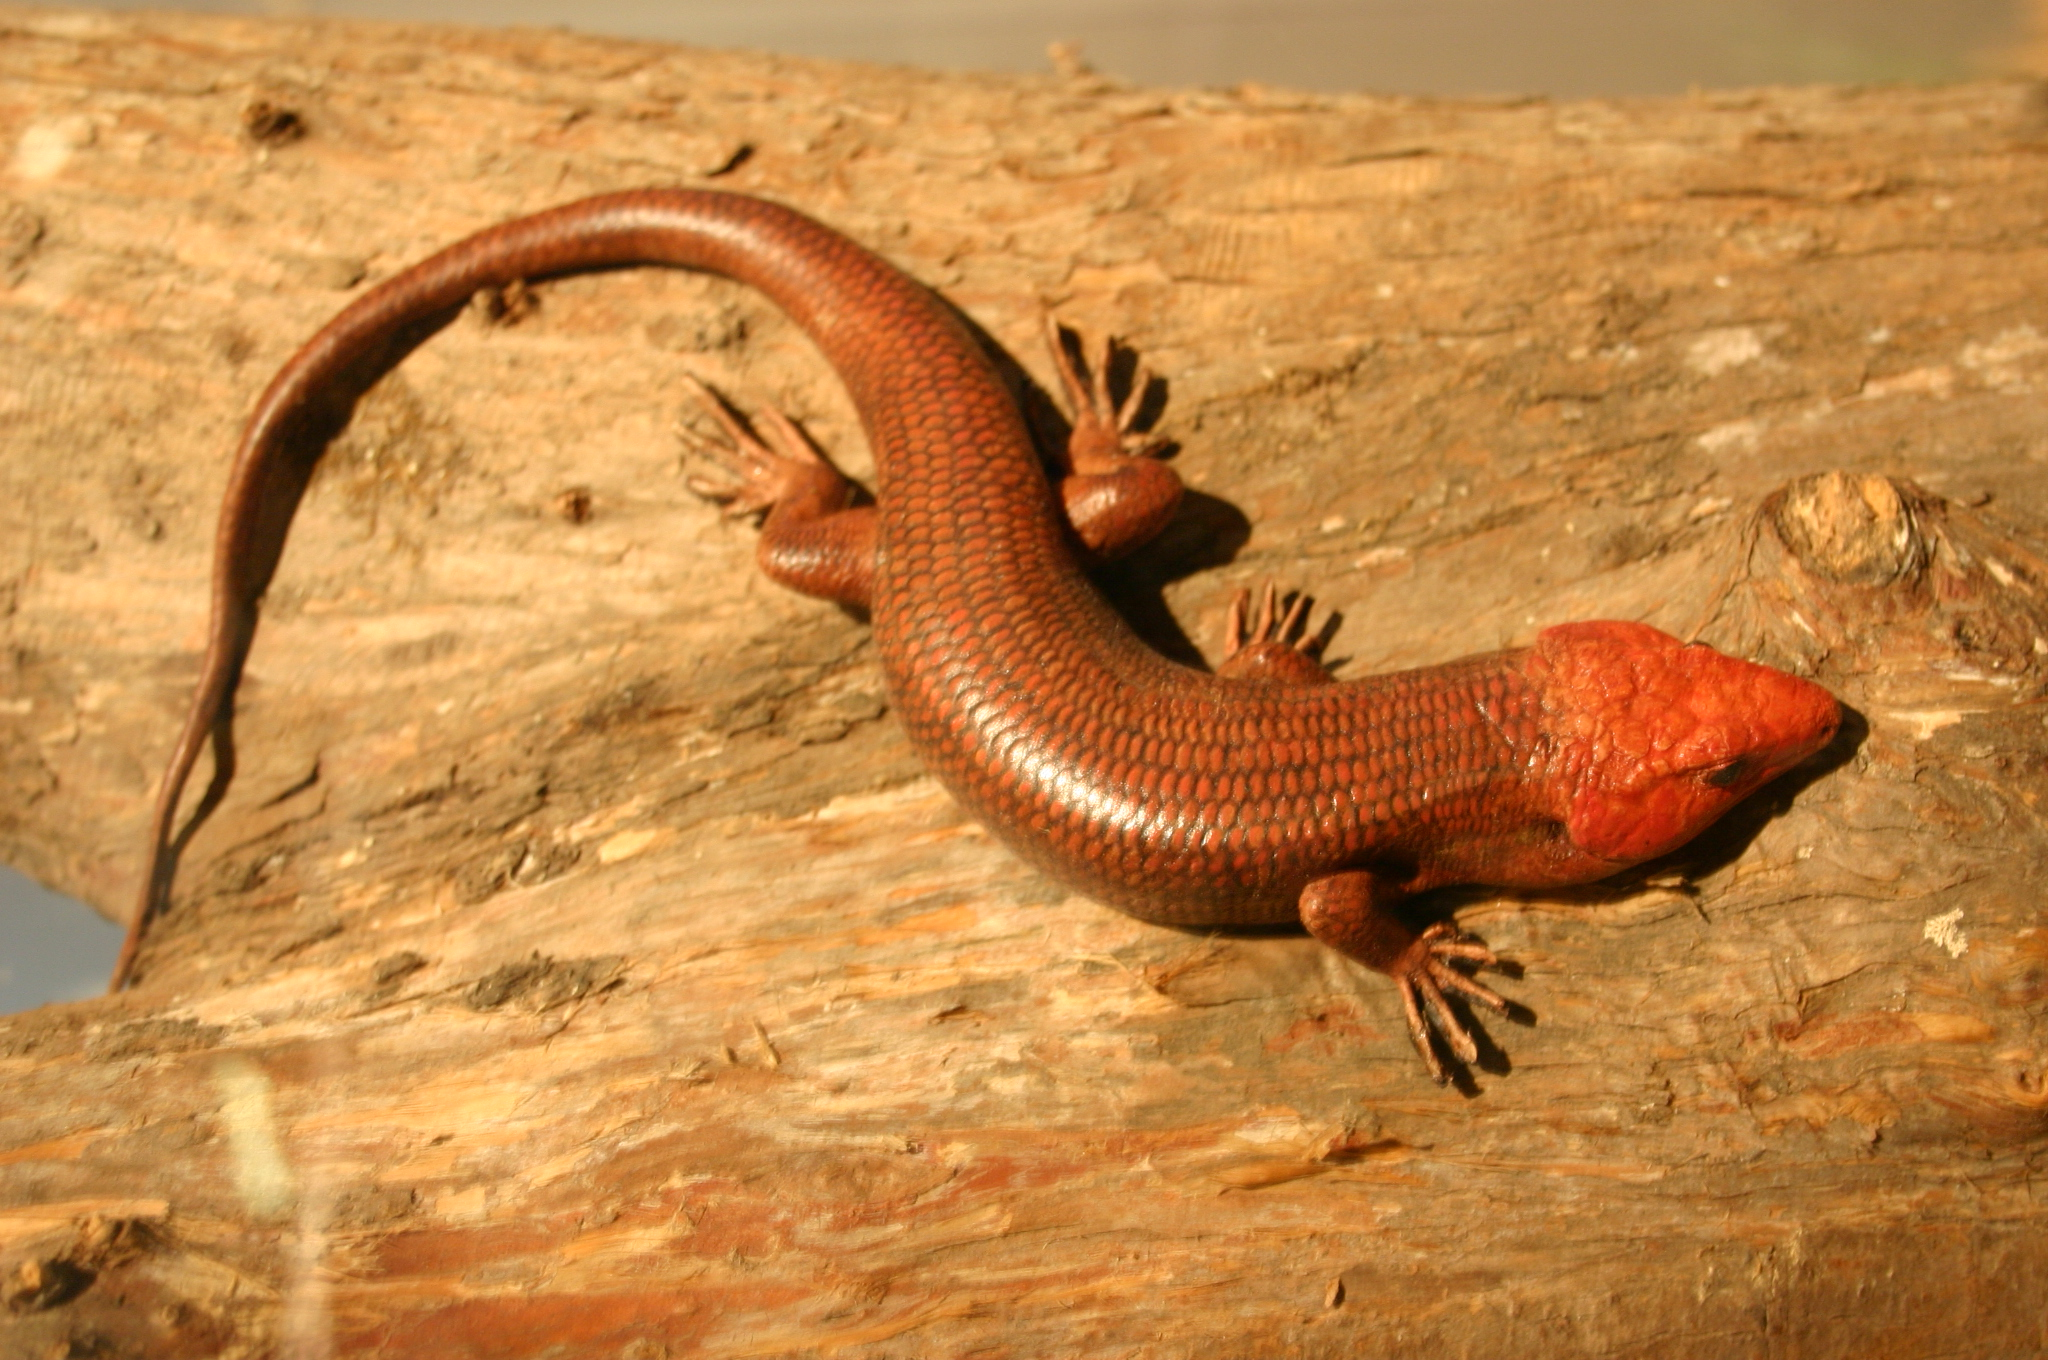 Broad-Headed Skink (Plestidion laticeps)